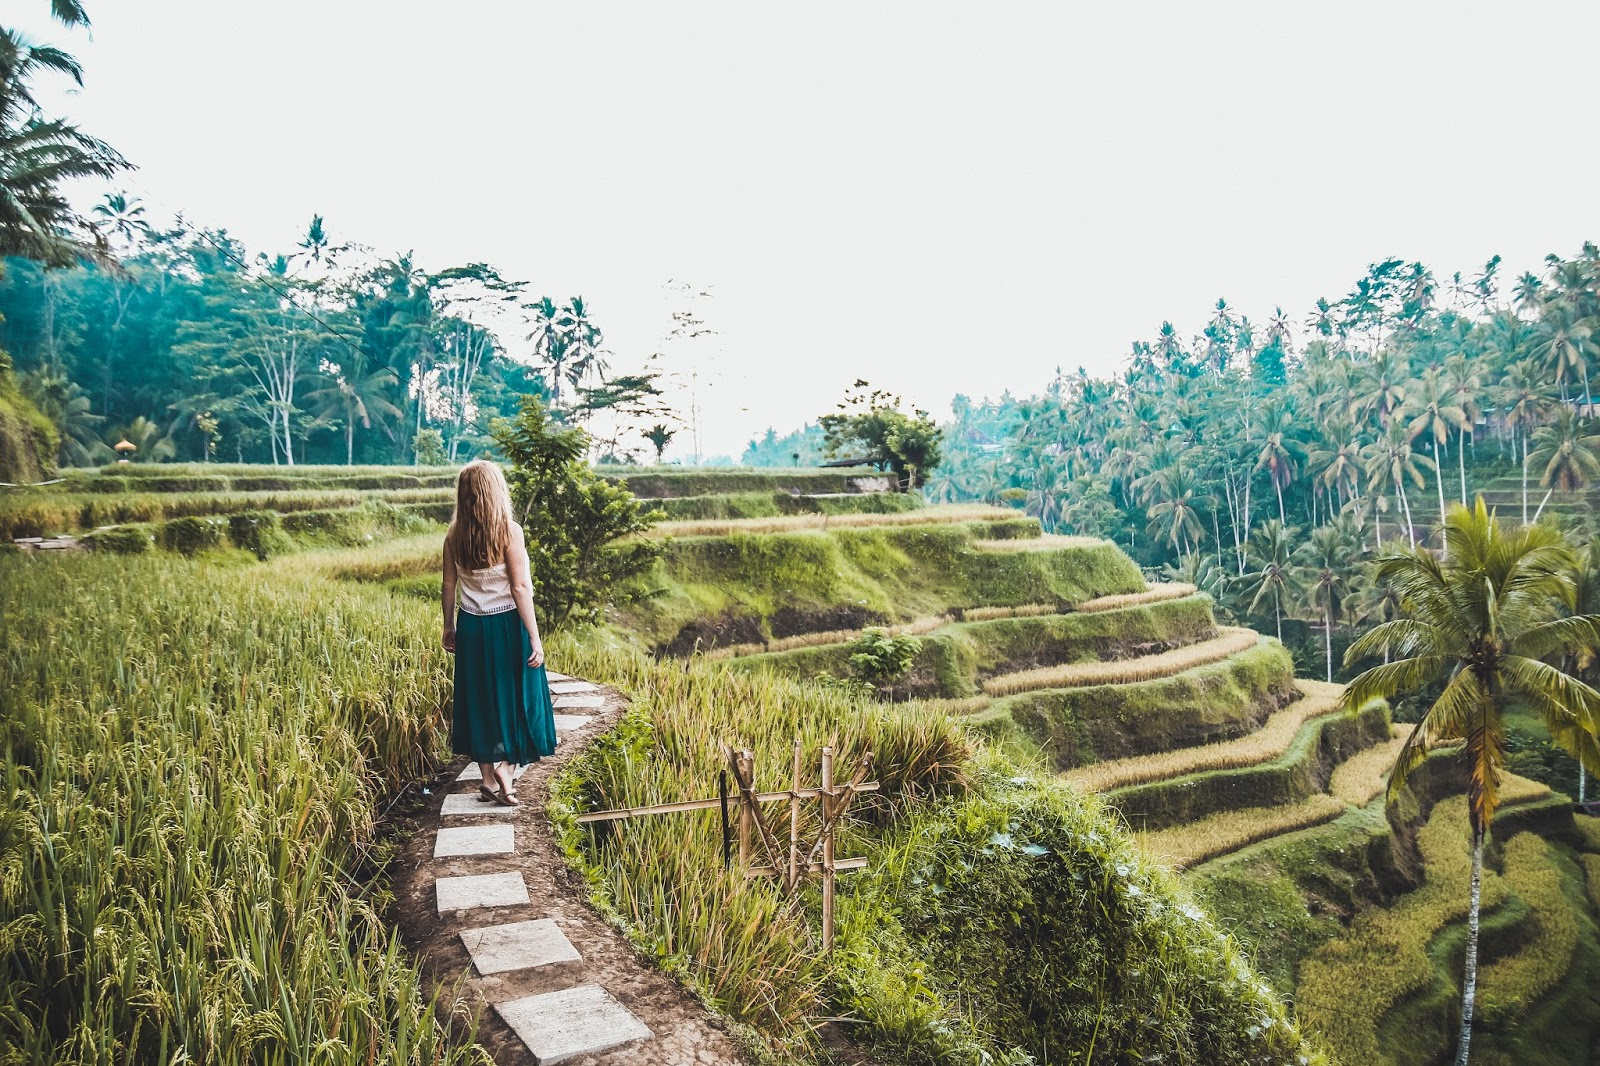 10 Life Changing Things To Do In Bali, Indonesia